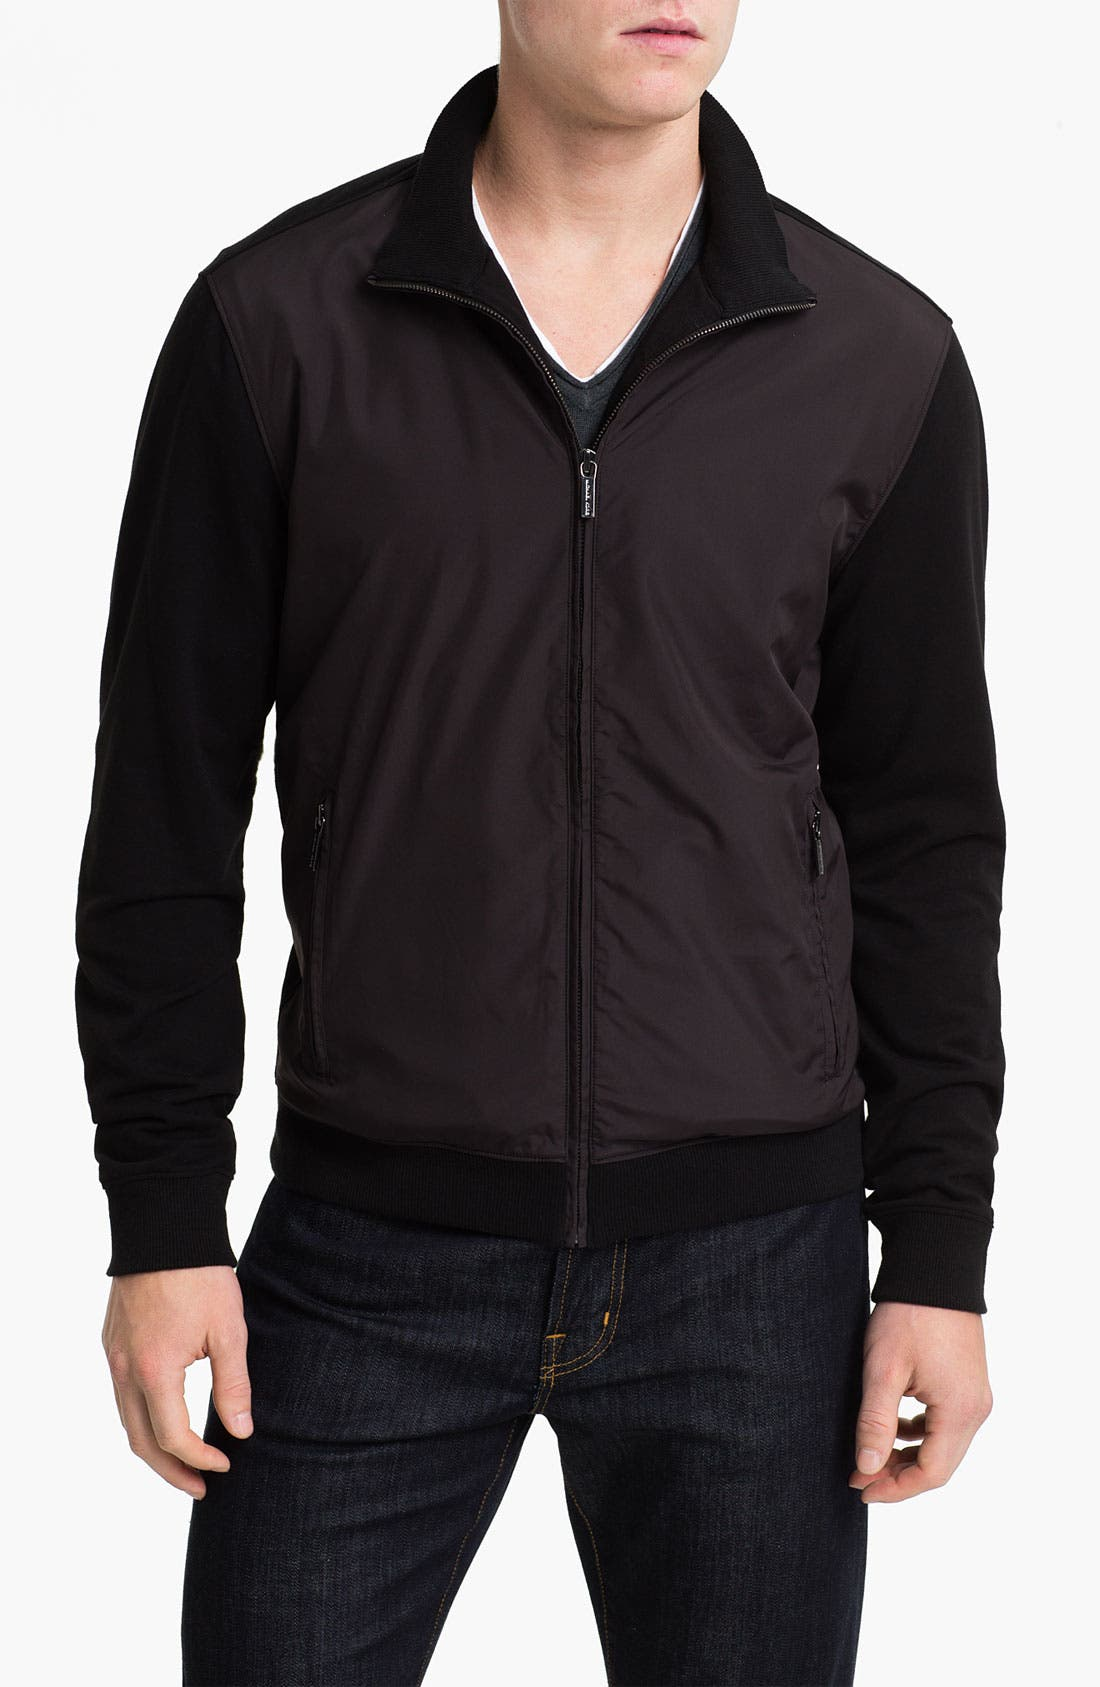 Main Image - Michael Kors Zip Front Jacket